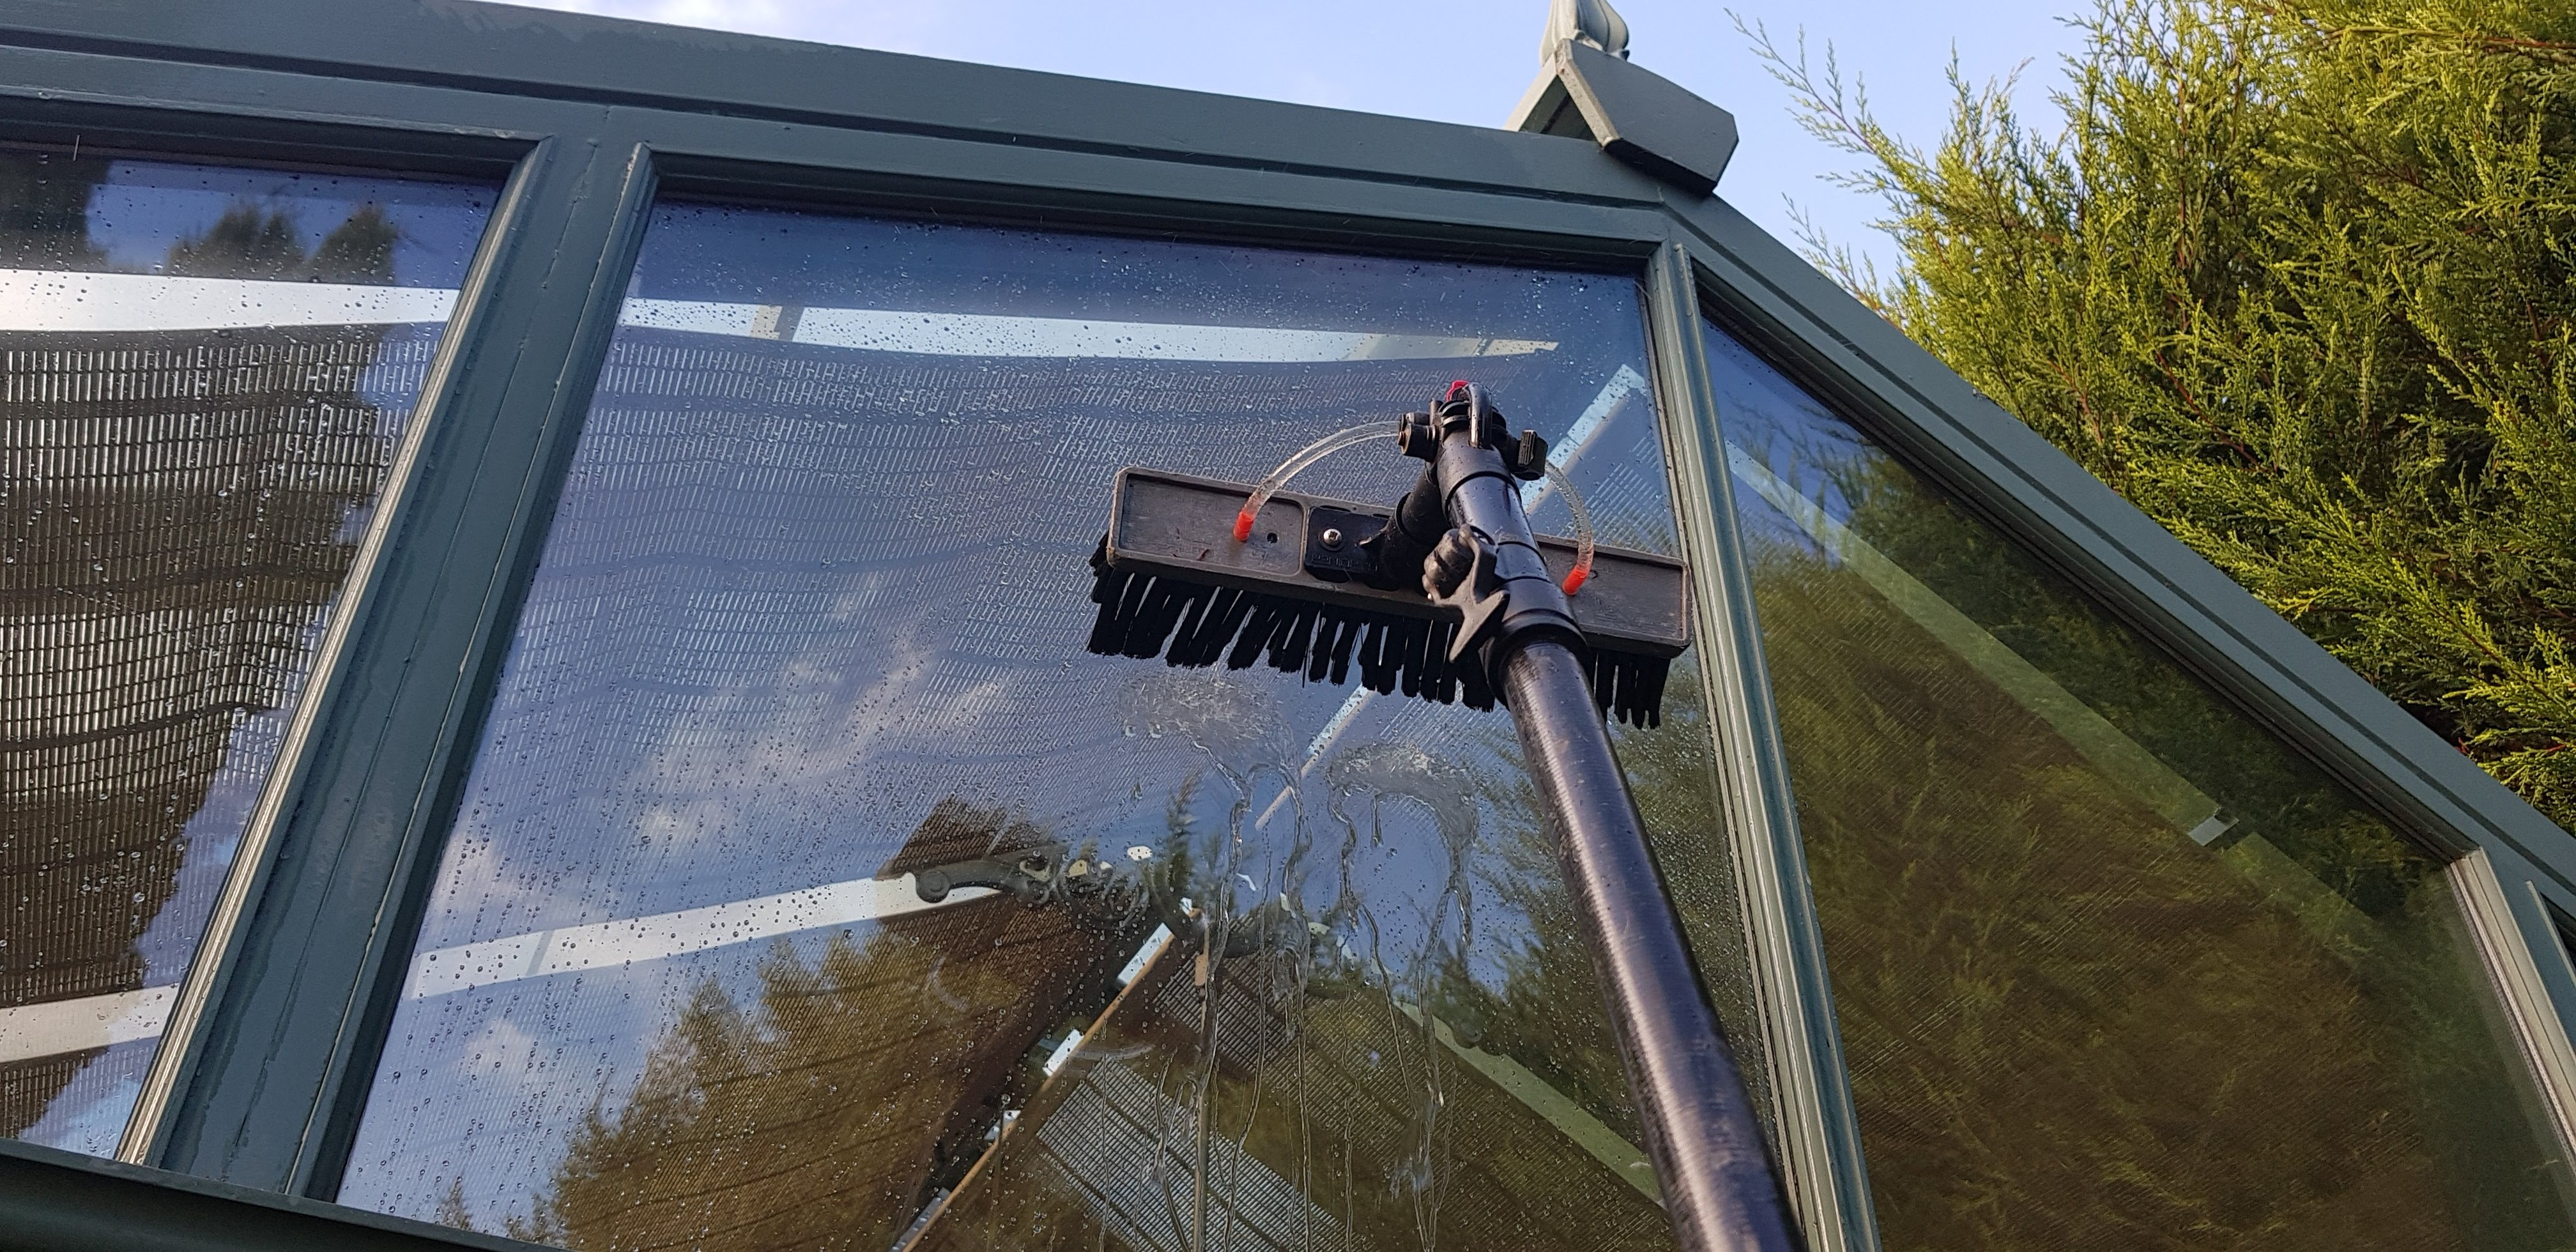 20181219_1139317460395693677160226 External Window Cleaning - Wirral, Liverpool, Chester